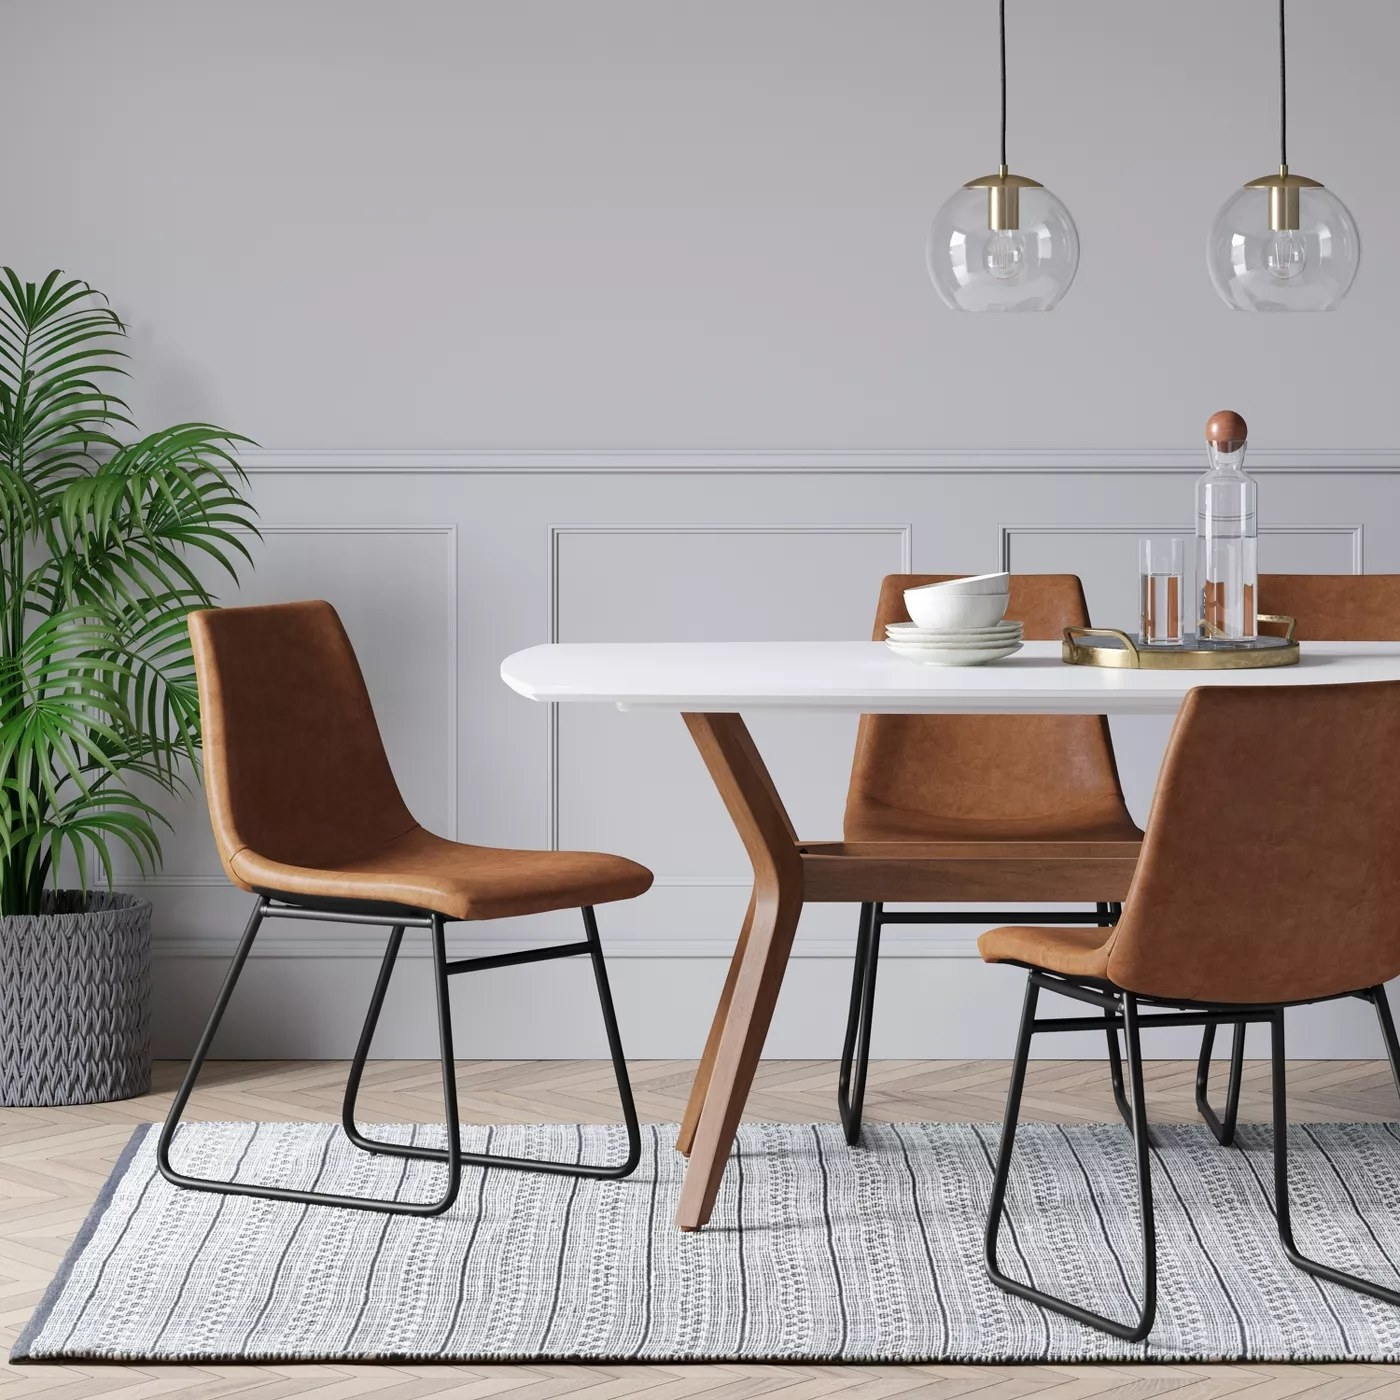 Leather and metal dining chairs